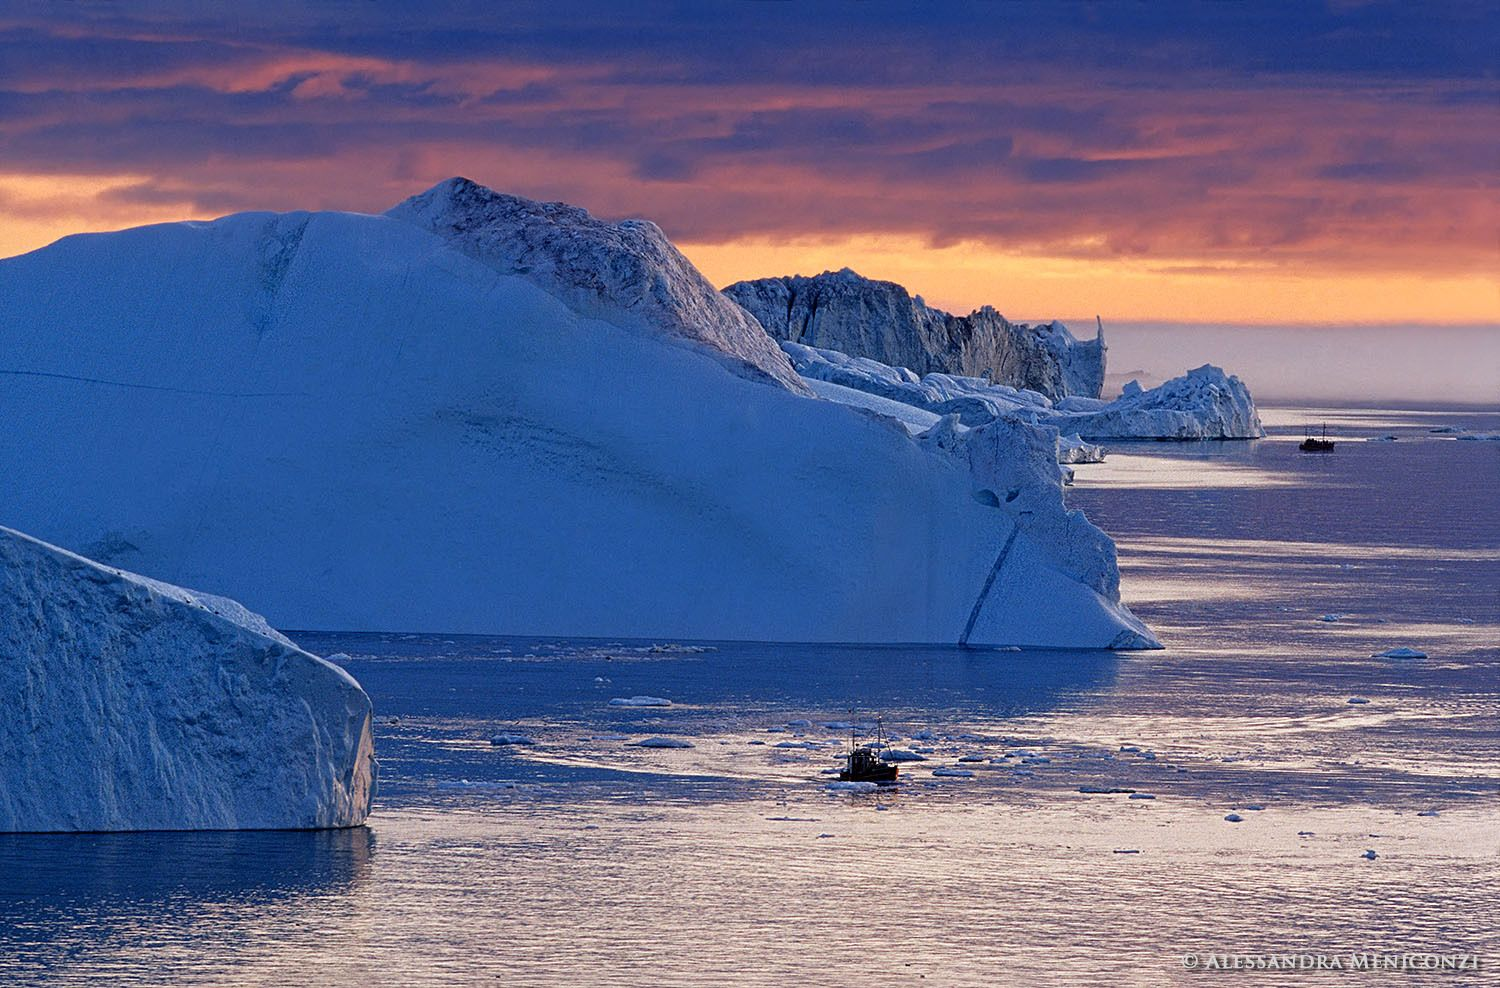 Fishing boats and massive icebergs shed by the Jakobshavn Isbrae glacier in Ilulissat Icefjord at sunset, West Greenland.